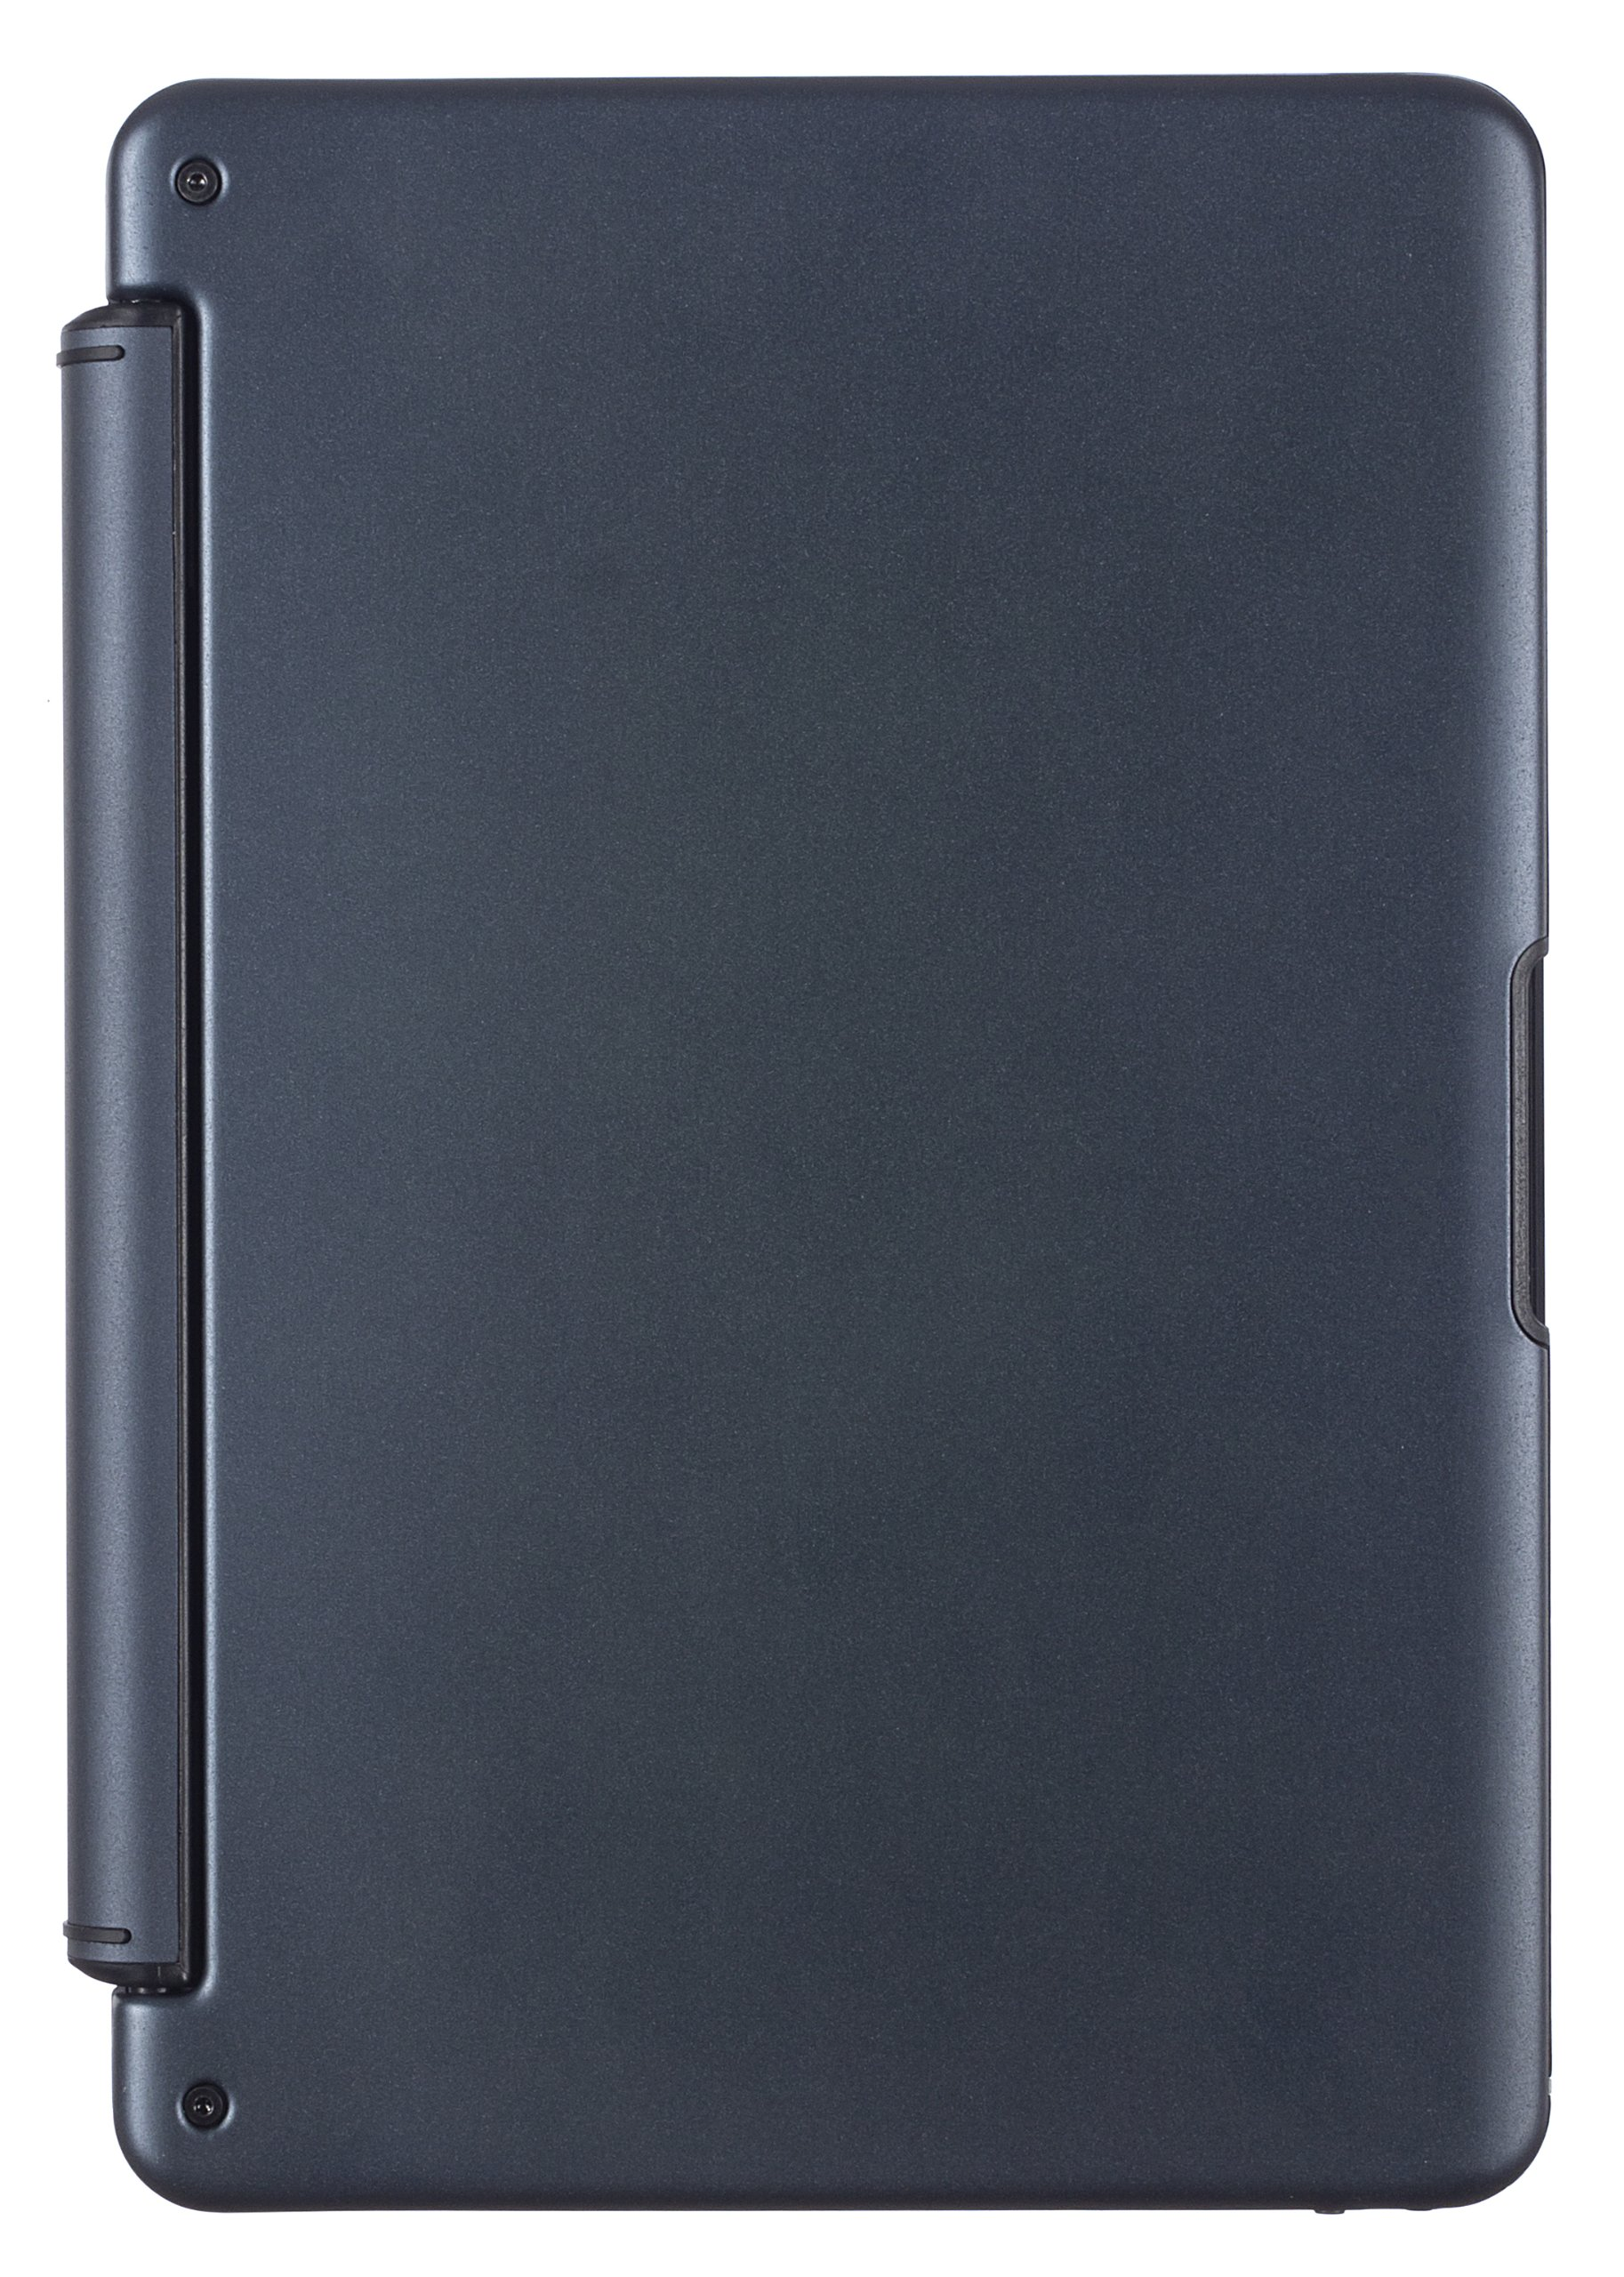 ZAGG Cover with Backlit Bluetooth Keyboard for Apple iPad mini 1 /  mini 2 - Black by ZAGG (Image #4)